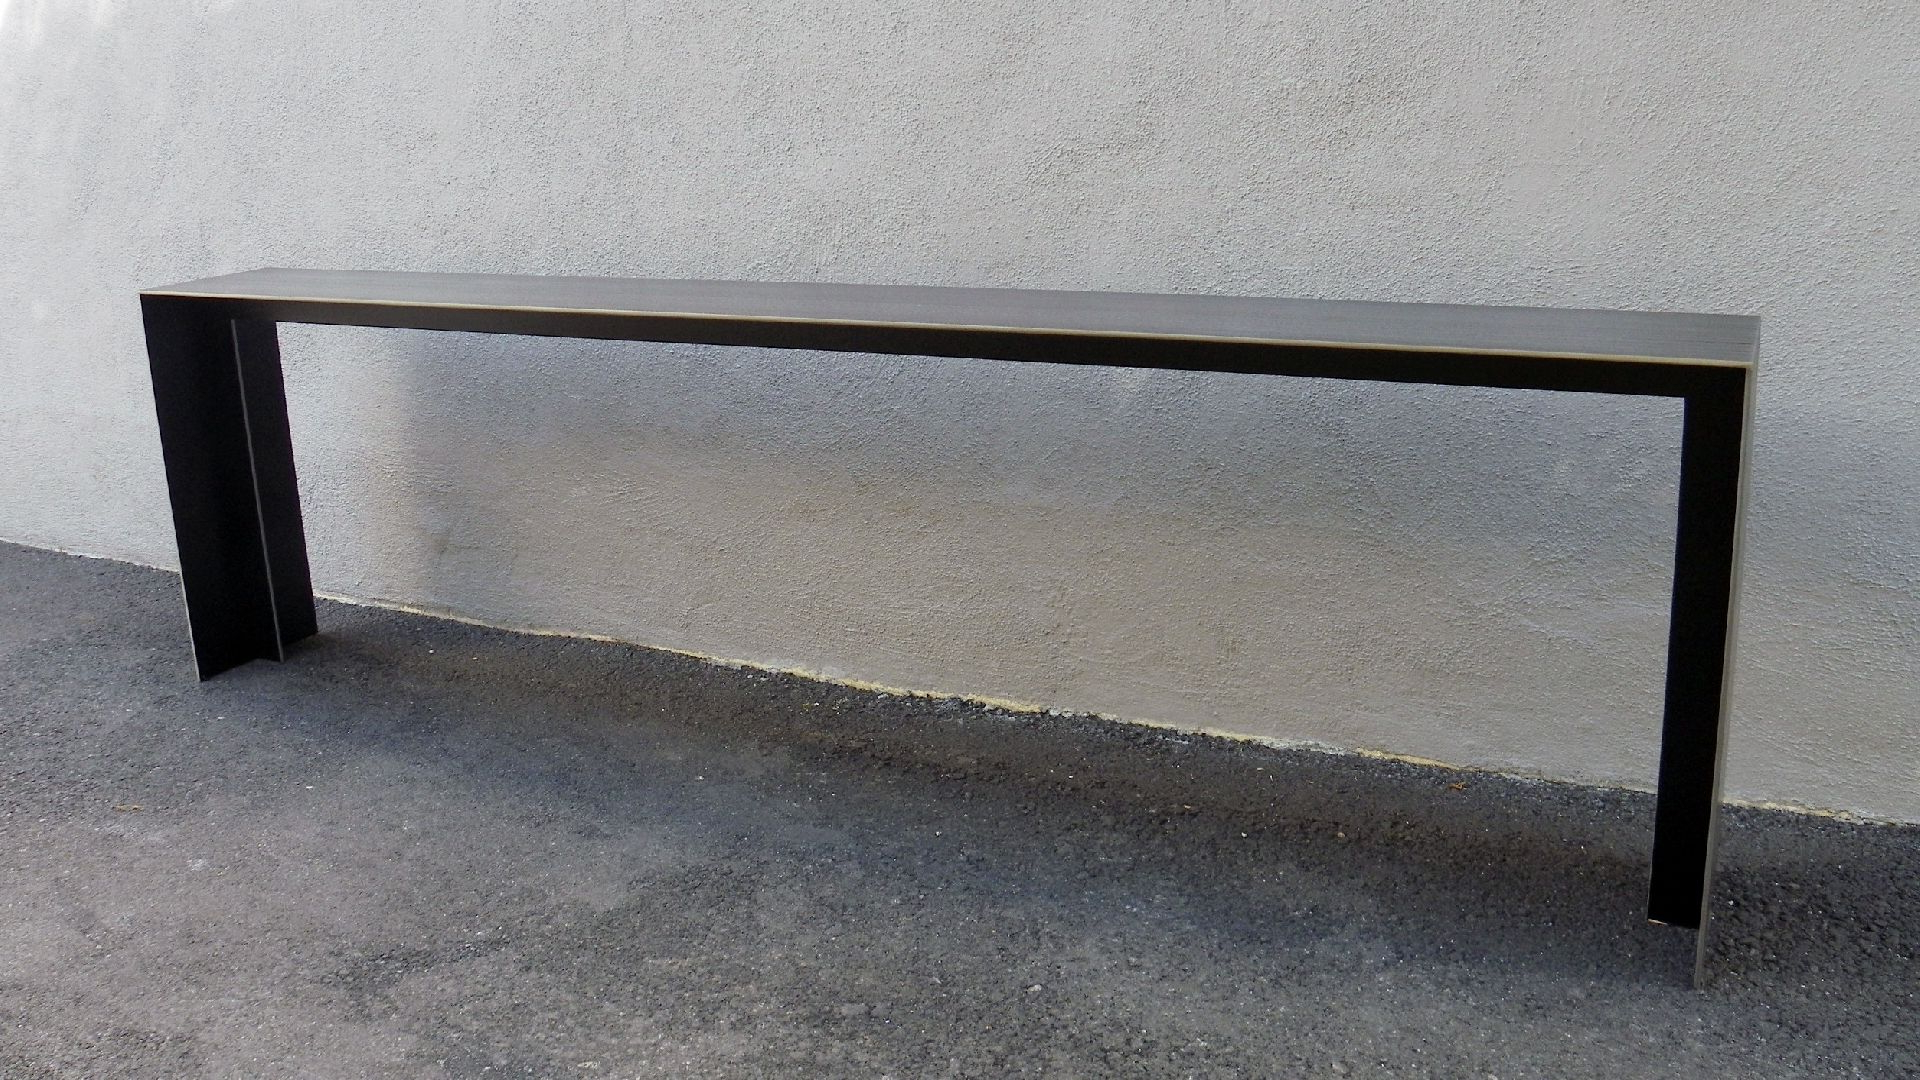 Steel Plate Console With Herringbone Patina | Rl3 | Pinterest Pertaining To Parsons White Marble Top & Dark Steel Base 48X16 Console Tables (View 19 of 20)